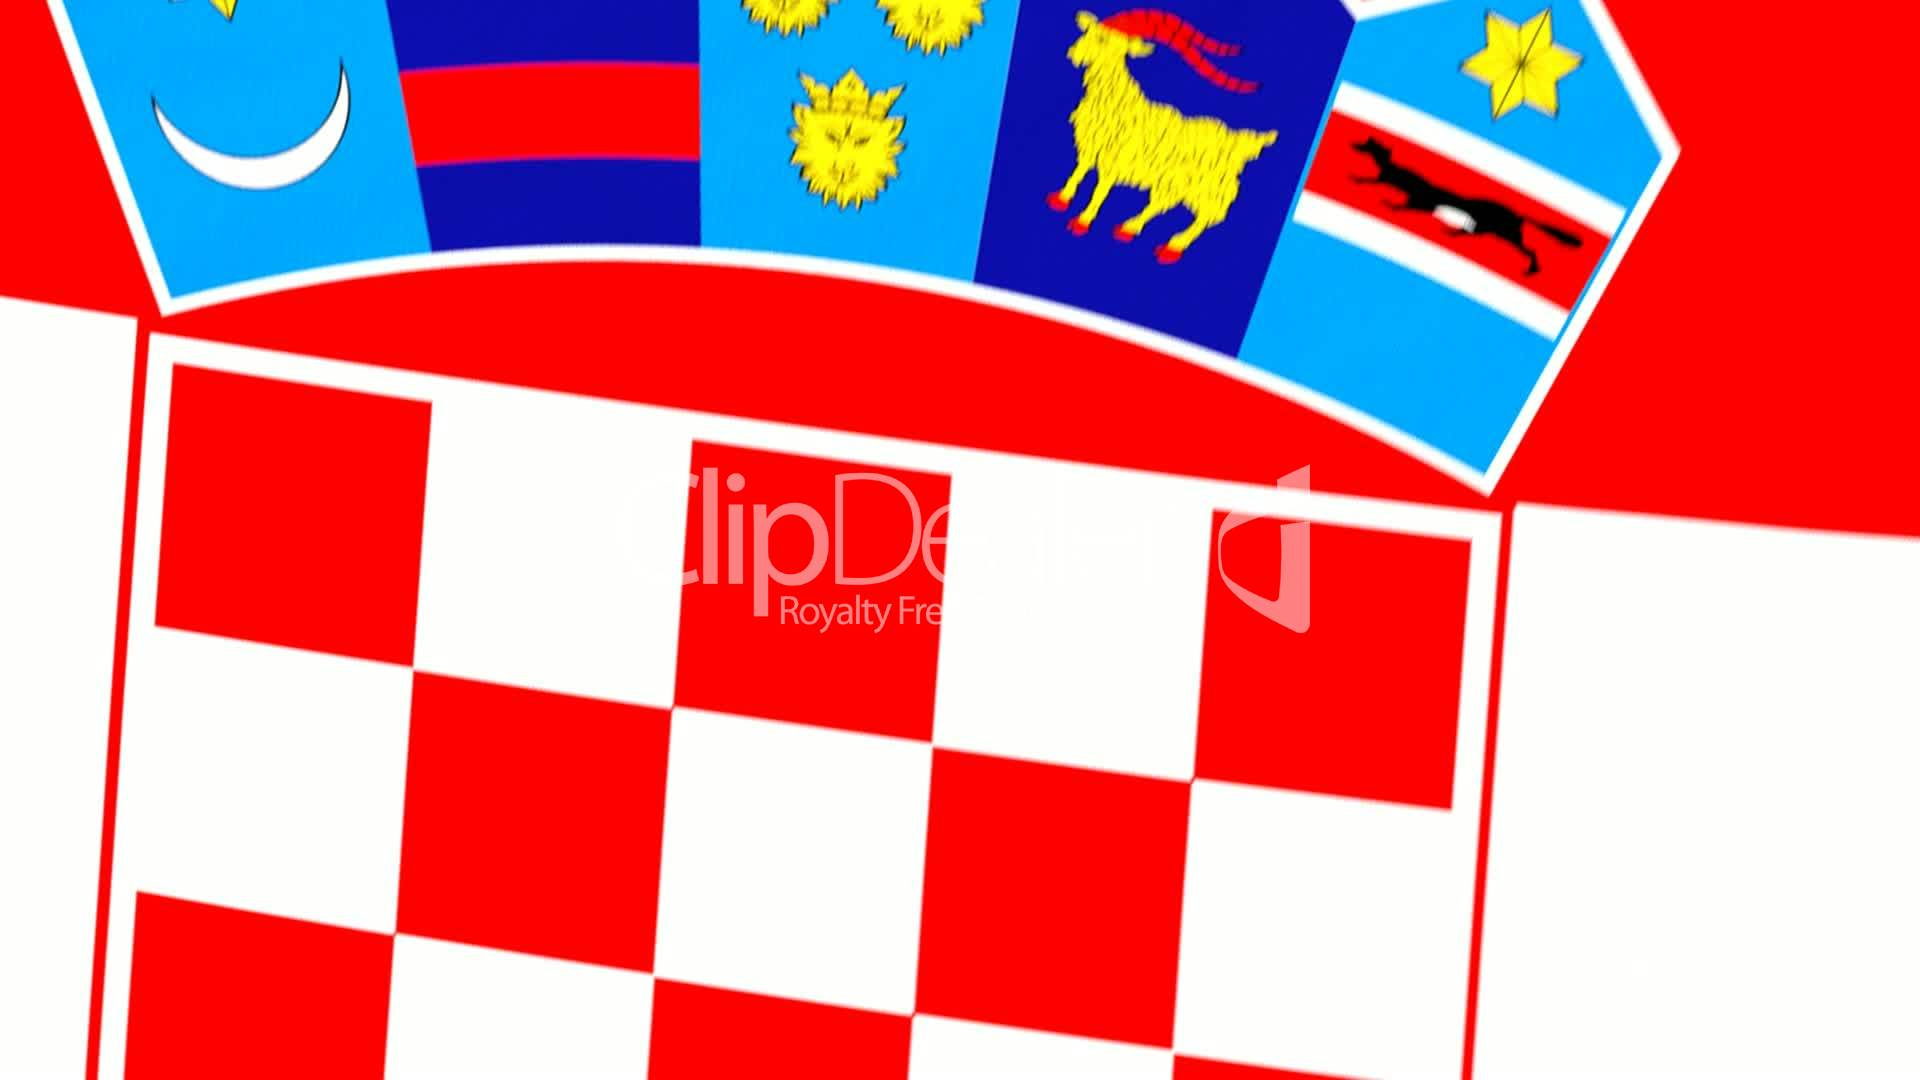 Animated Flag Of Croatia With A Pin On A Worldmap Royalty Free